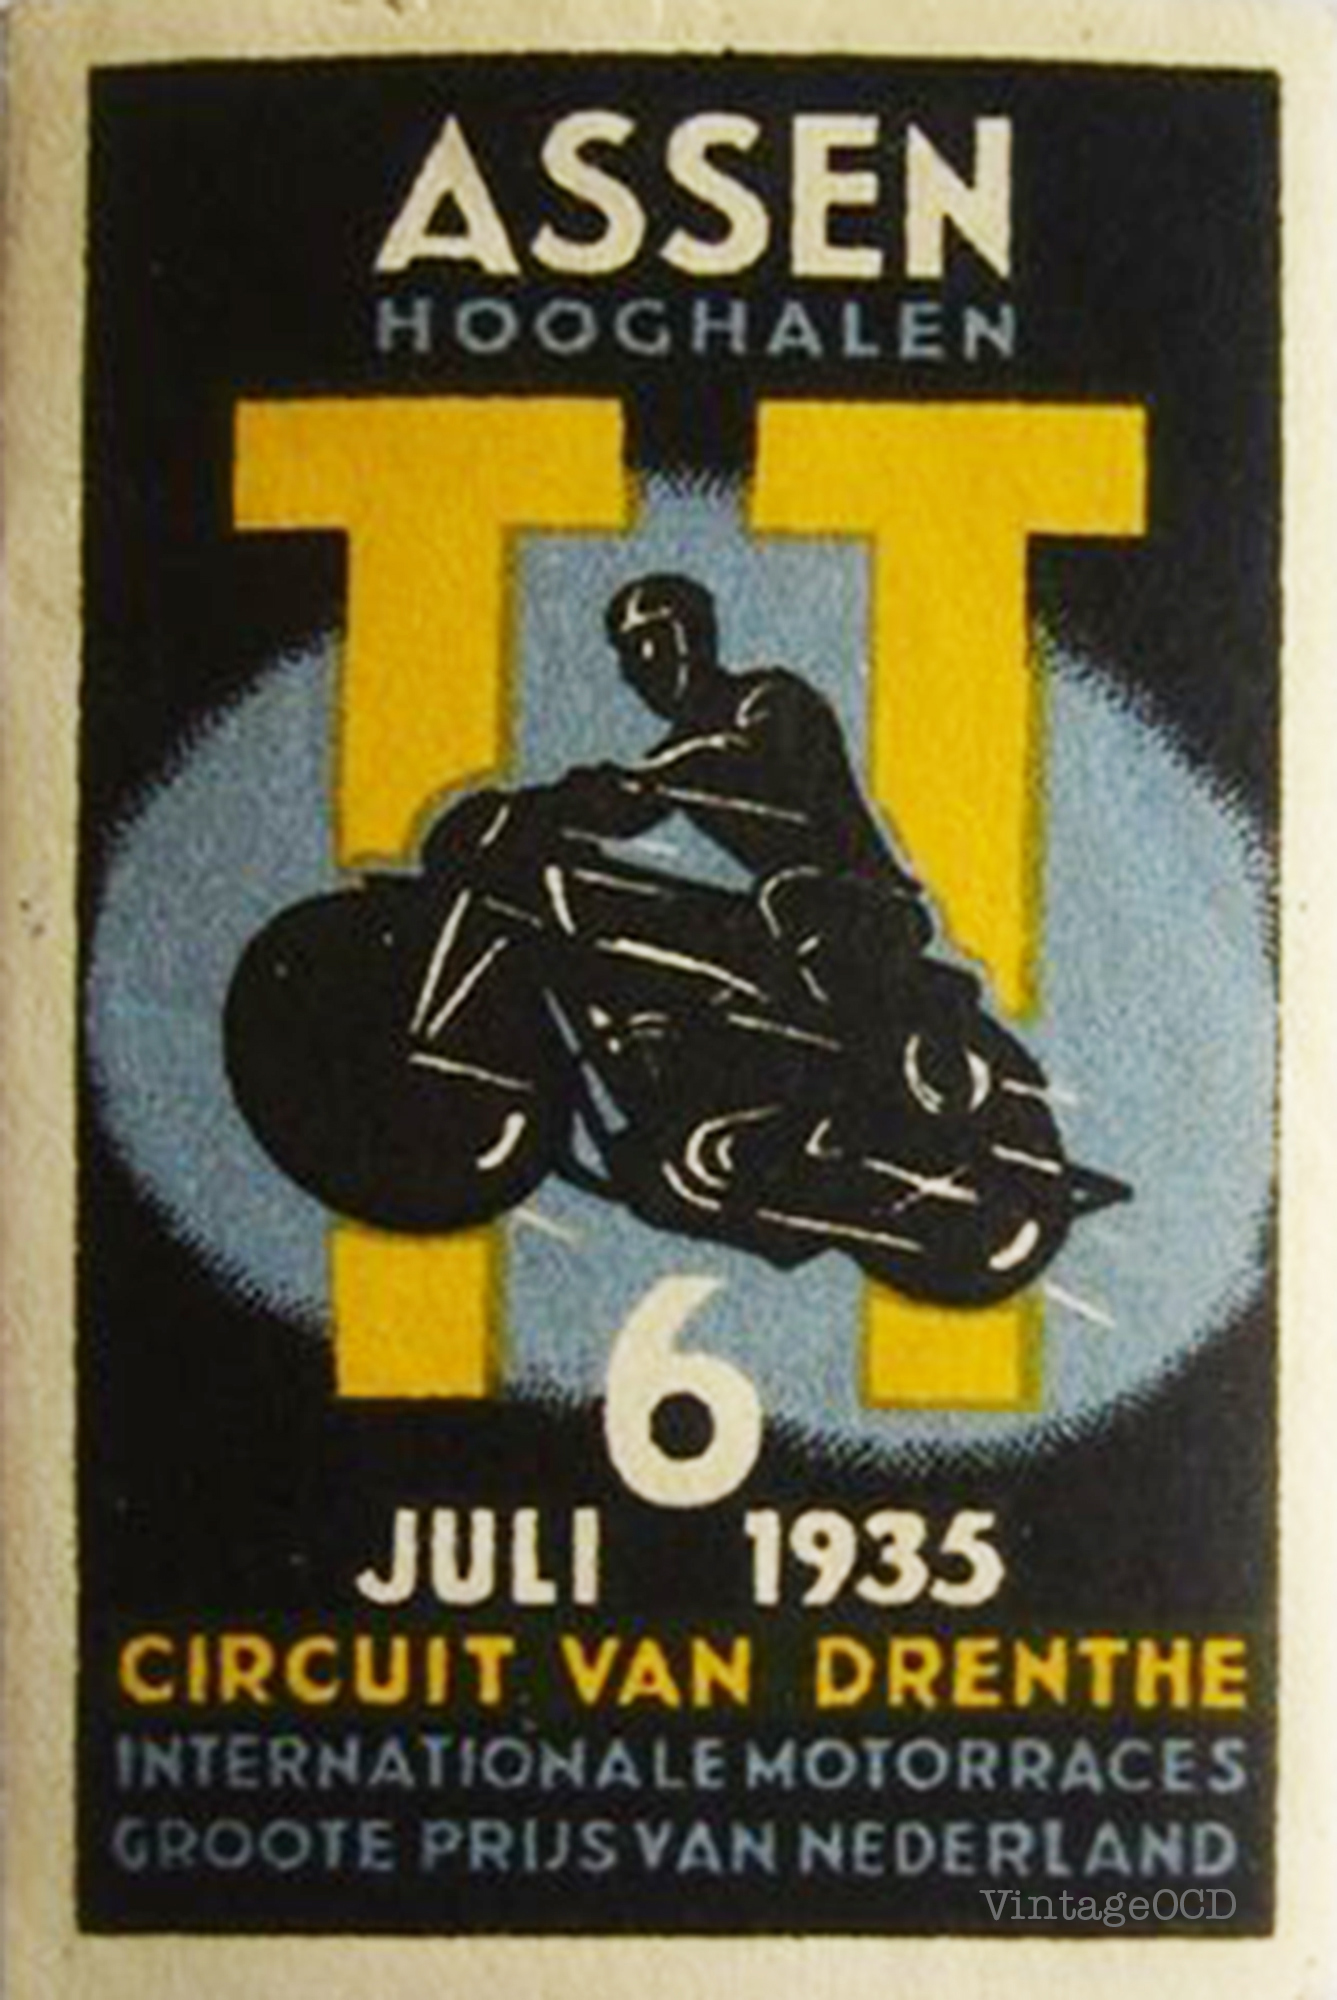 french motorcycle poster | Vintage OCD